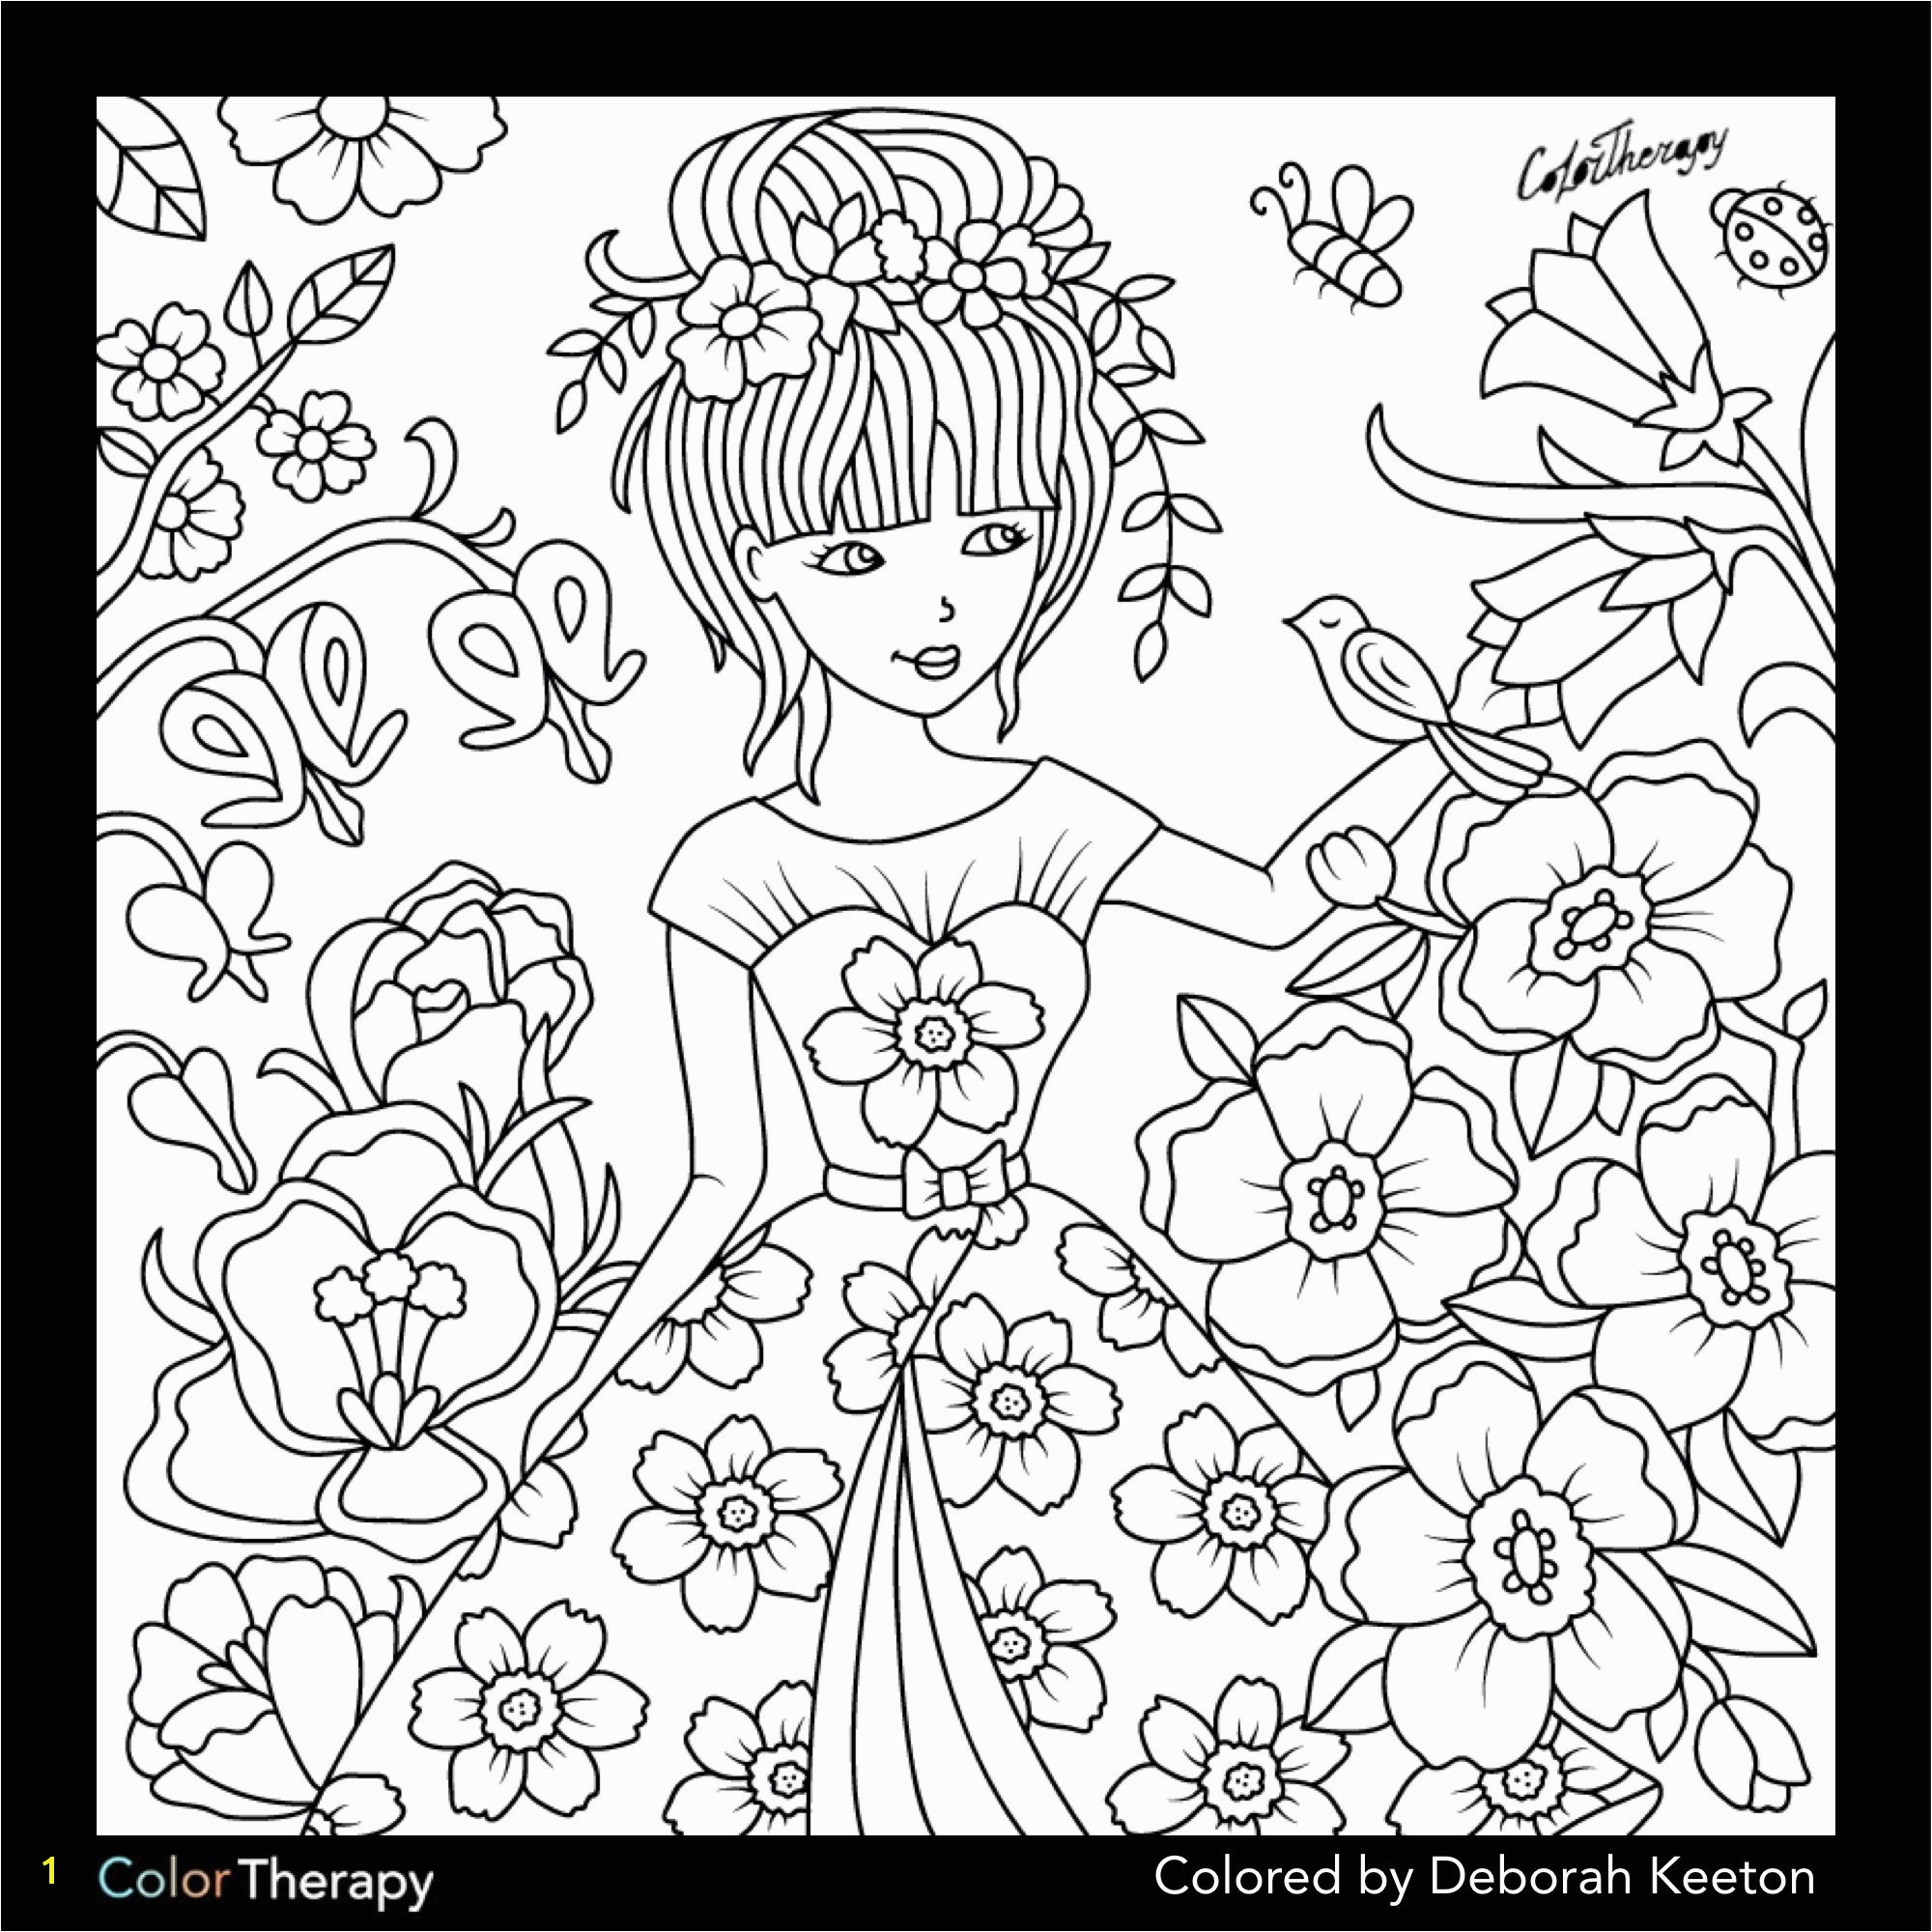 Leotard Coloring Pages Color Pages for Girls Fresh Coloring Pages for Girls Lovely